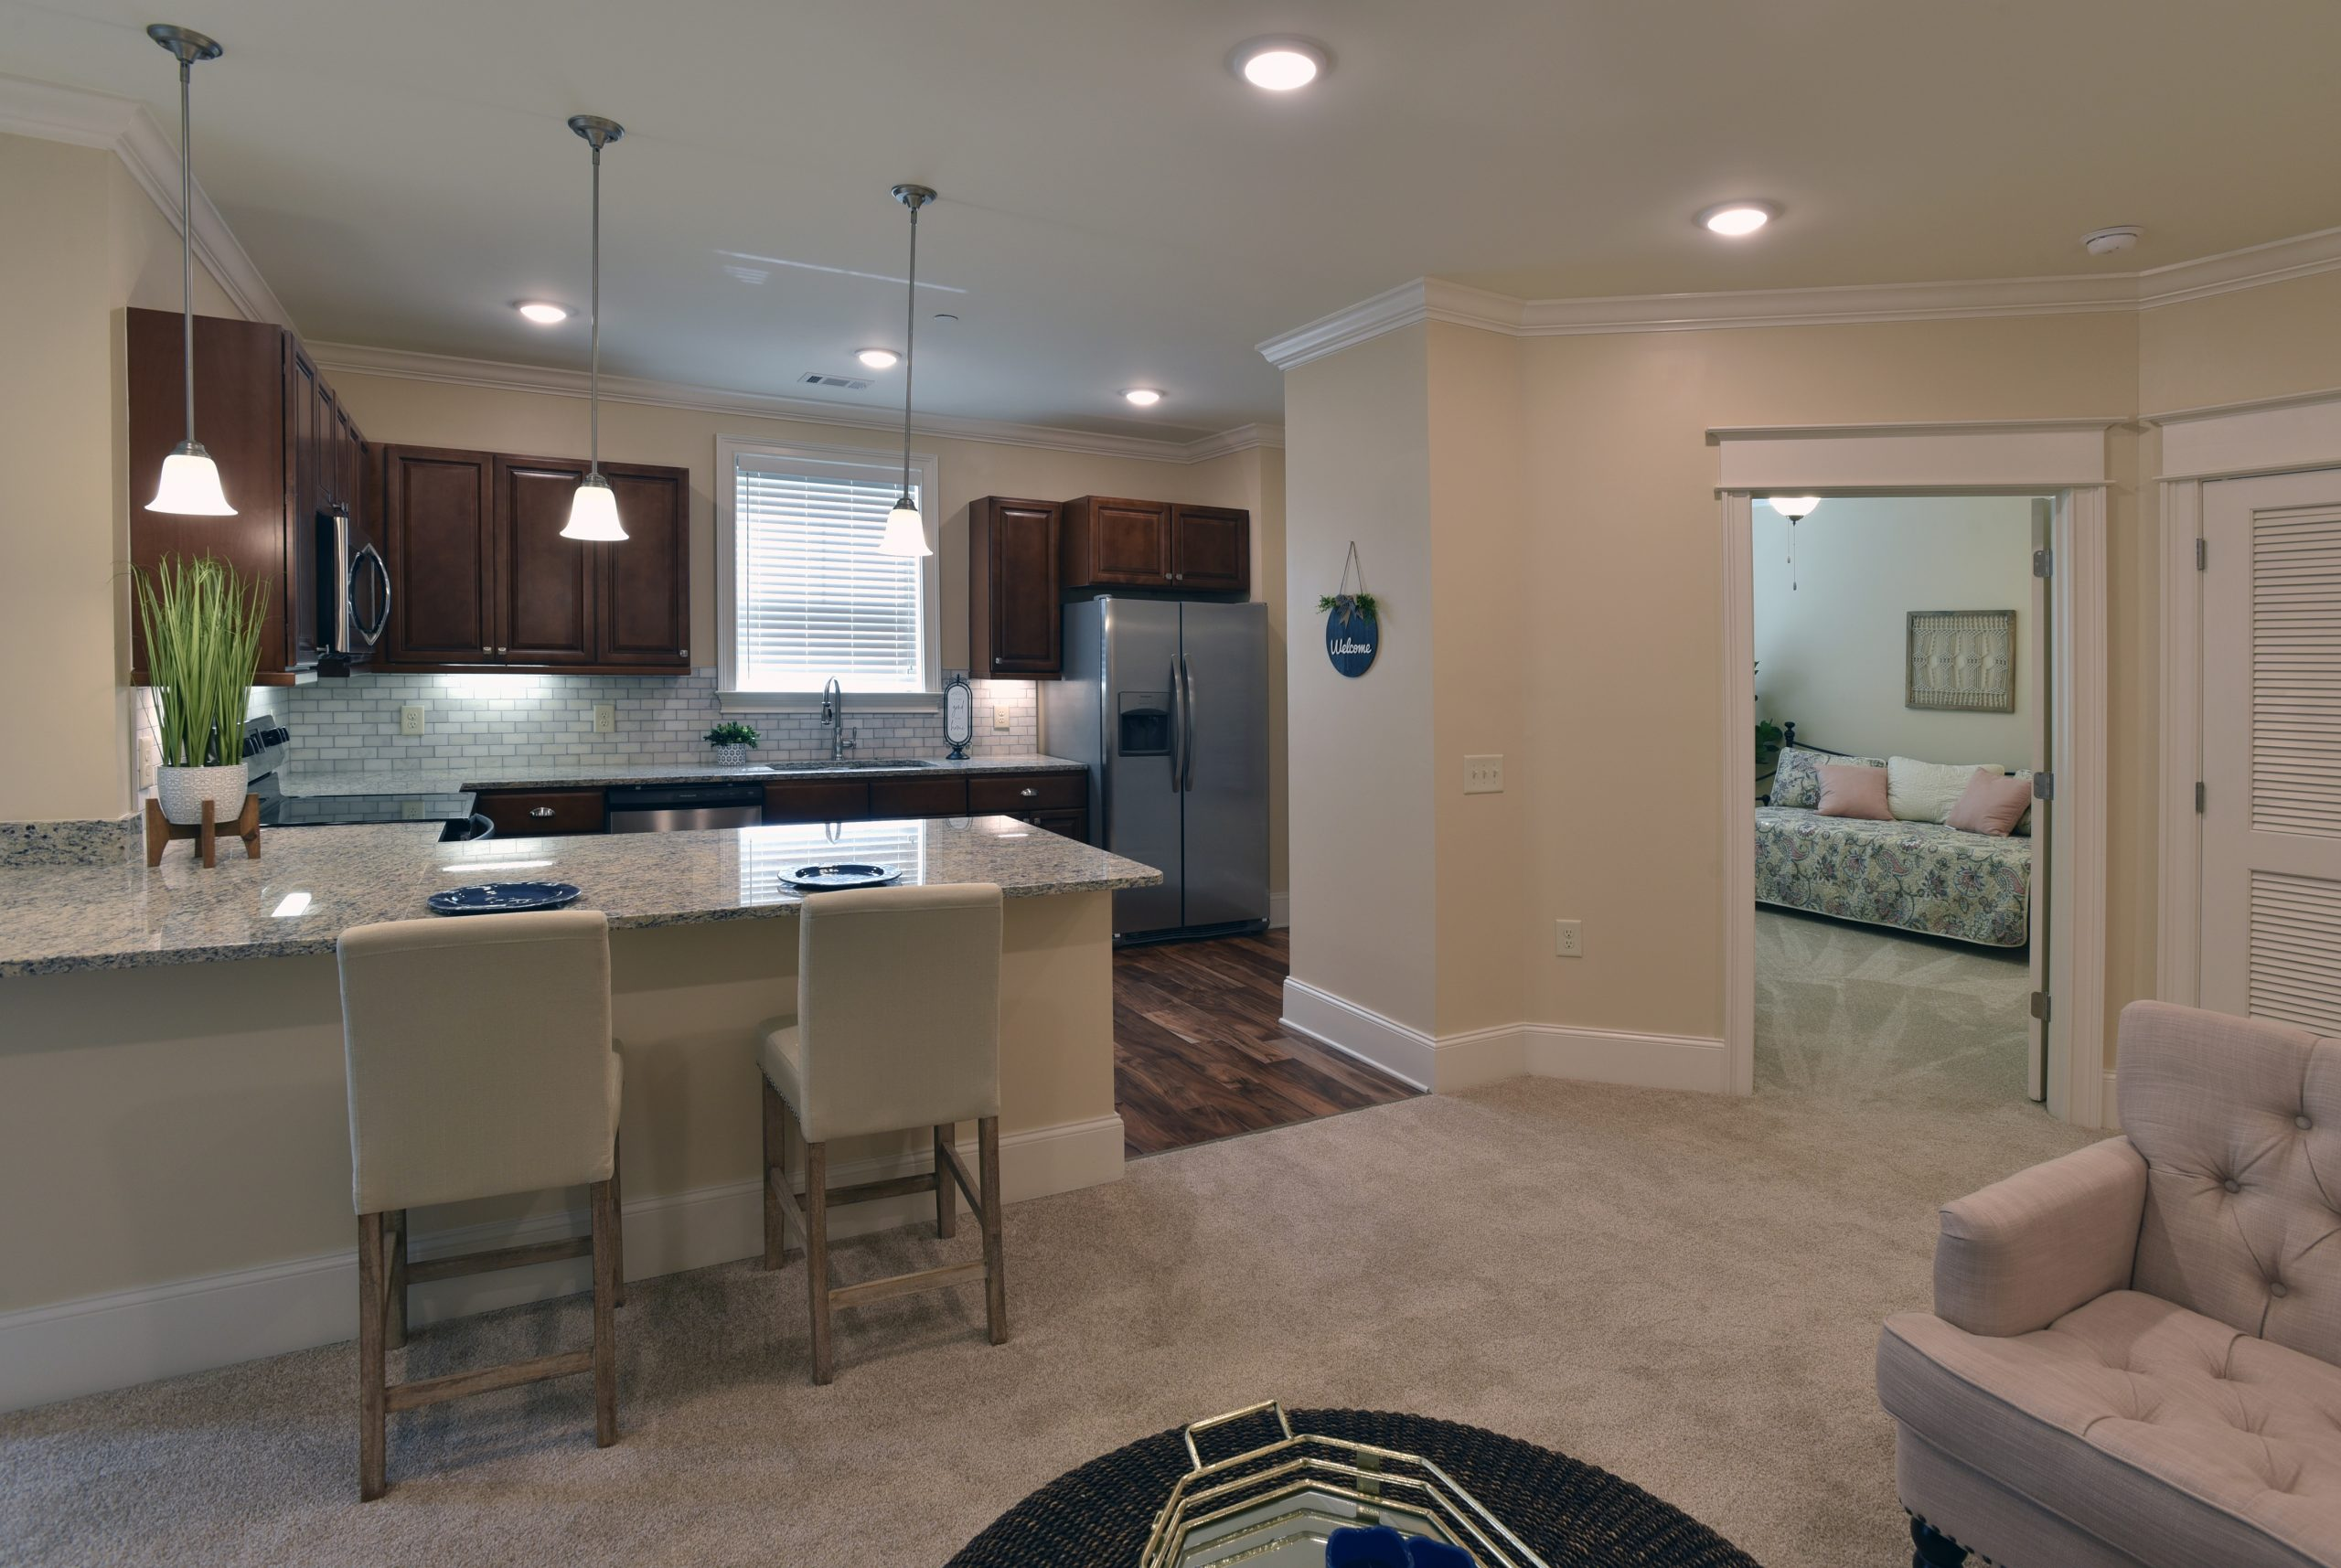 Villas at Canterfield of Kennesaw Resident room